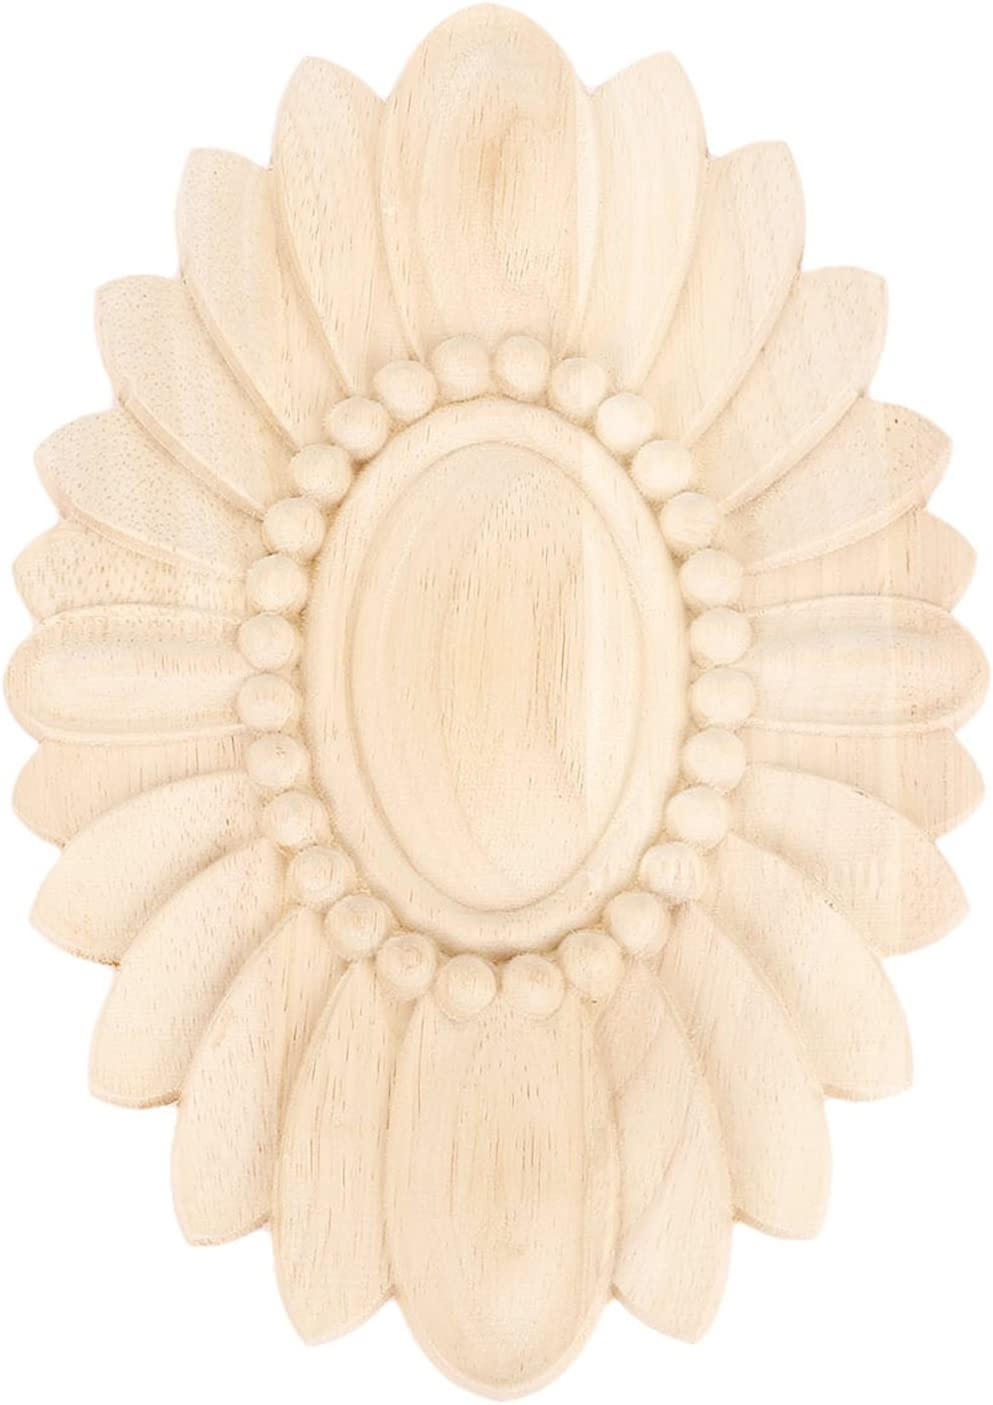 MUXSAM 1Pc Wood Furniture Applique Onlay Carved Unpainted Decoration for Furniture Door Cabinet Wall (24x17cm/9.45